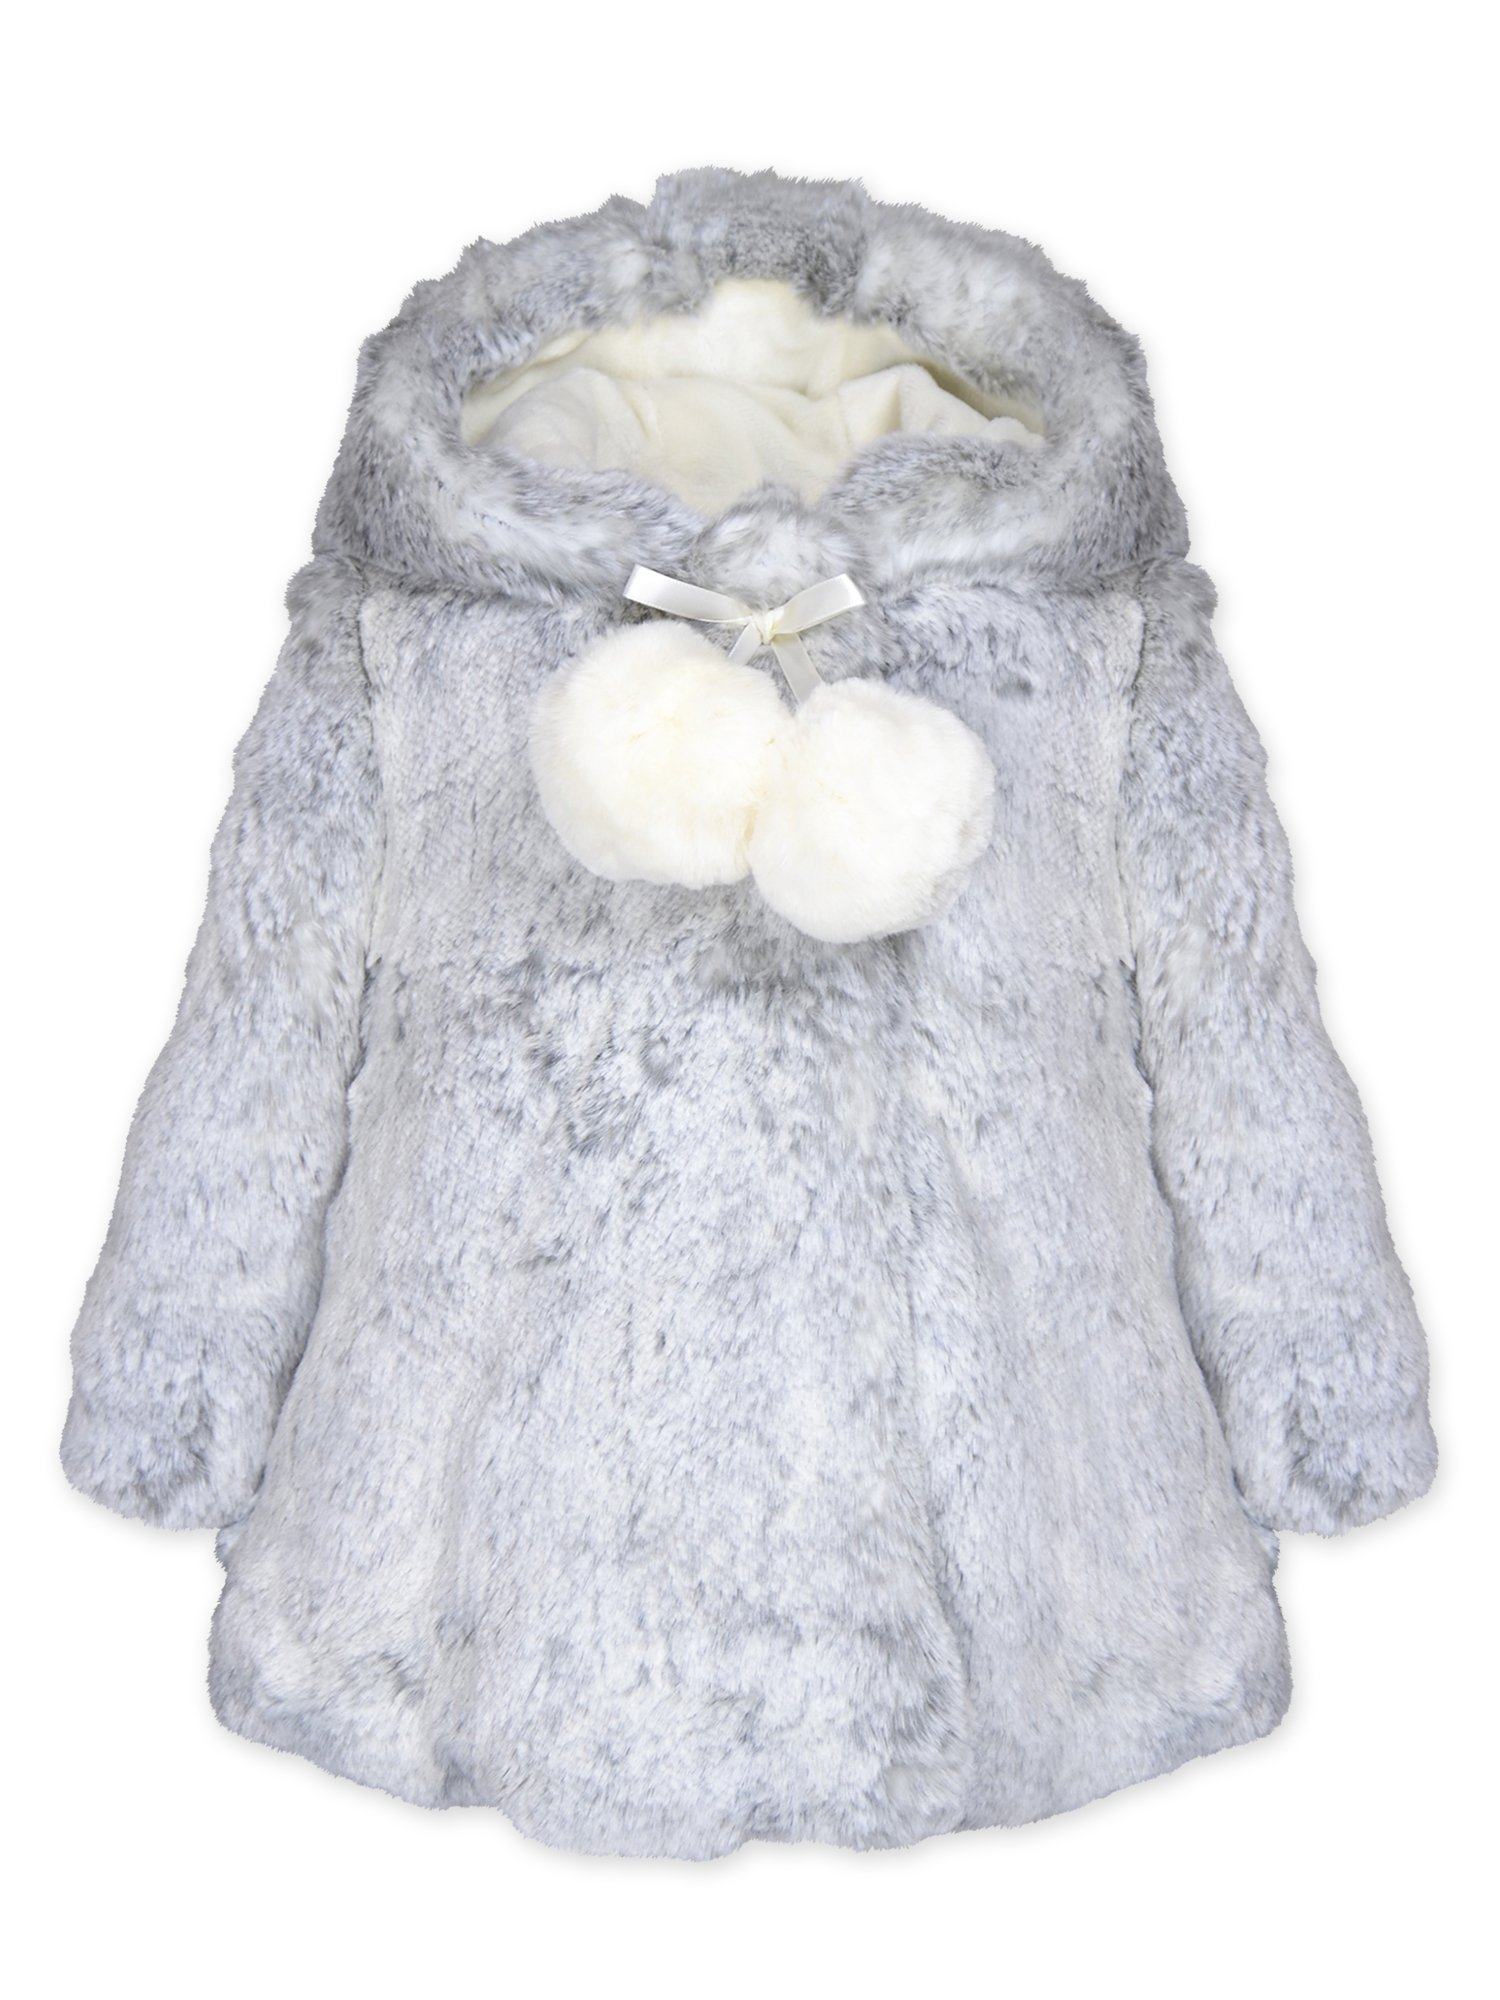 Widgeon Toddler Girls' Hooded a-Line Faux Fur Coat with Pompom 3706, Glam/Glacier Mist, 2T